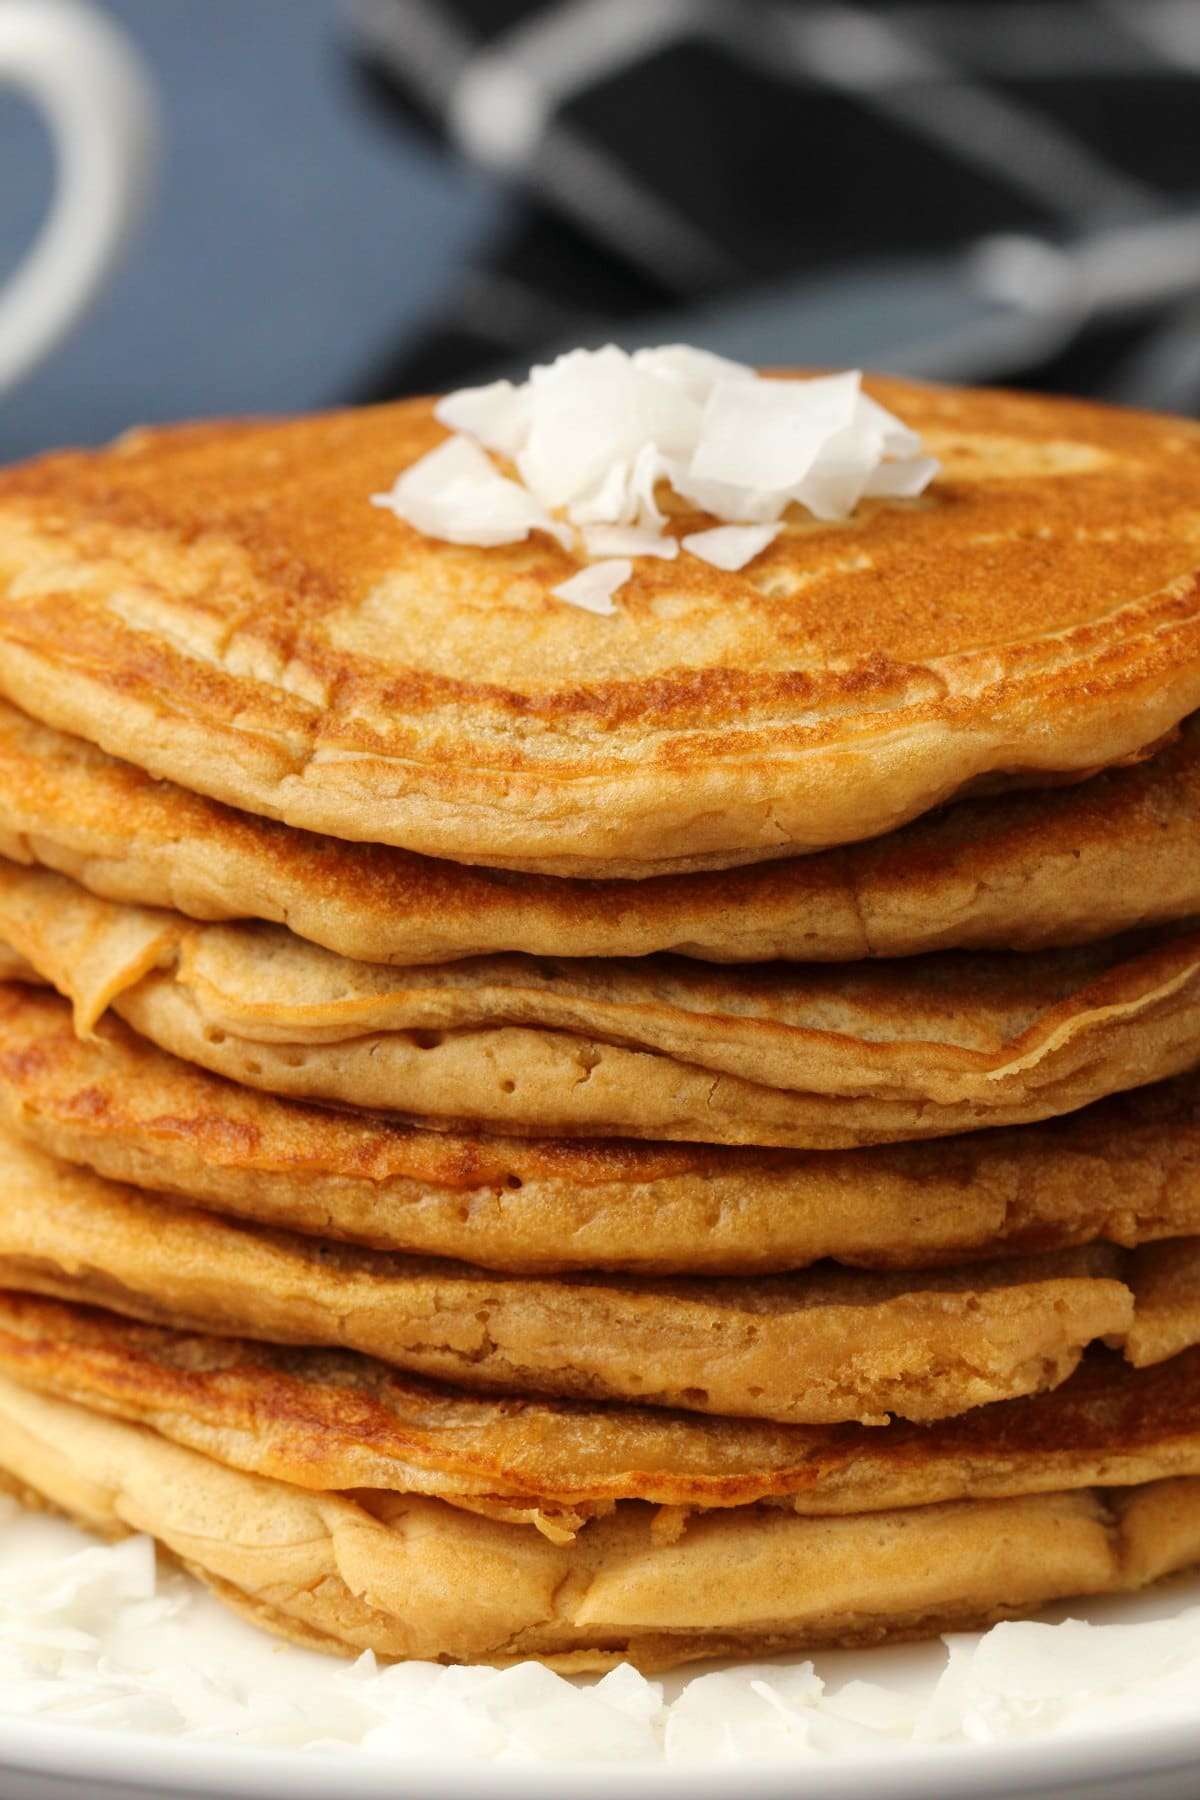 Vegan coconut pancakes in a stack on a white plate.